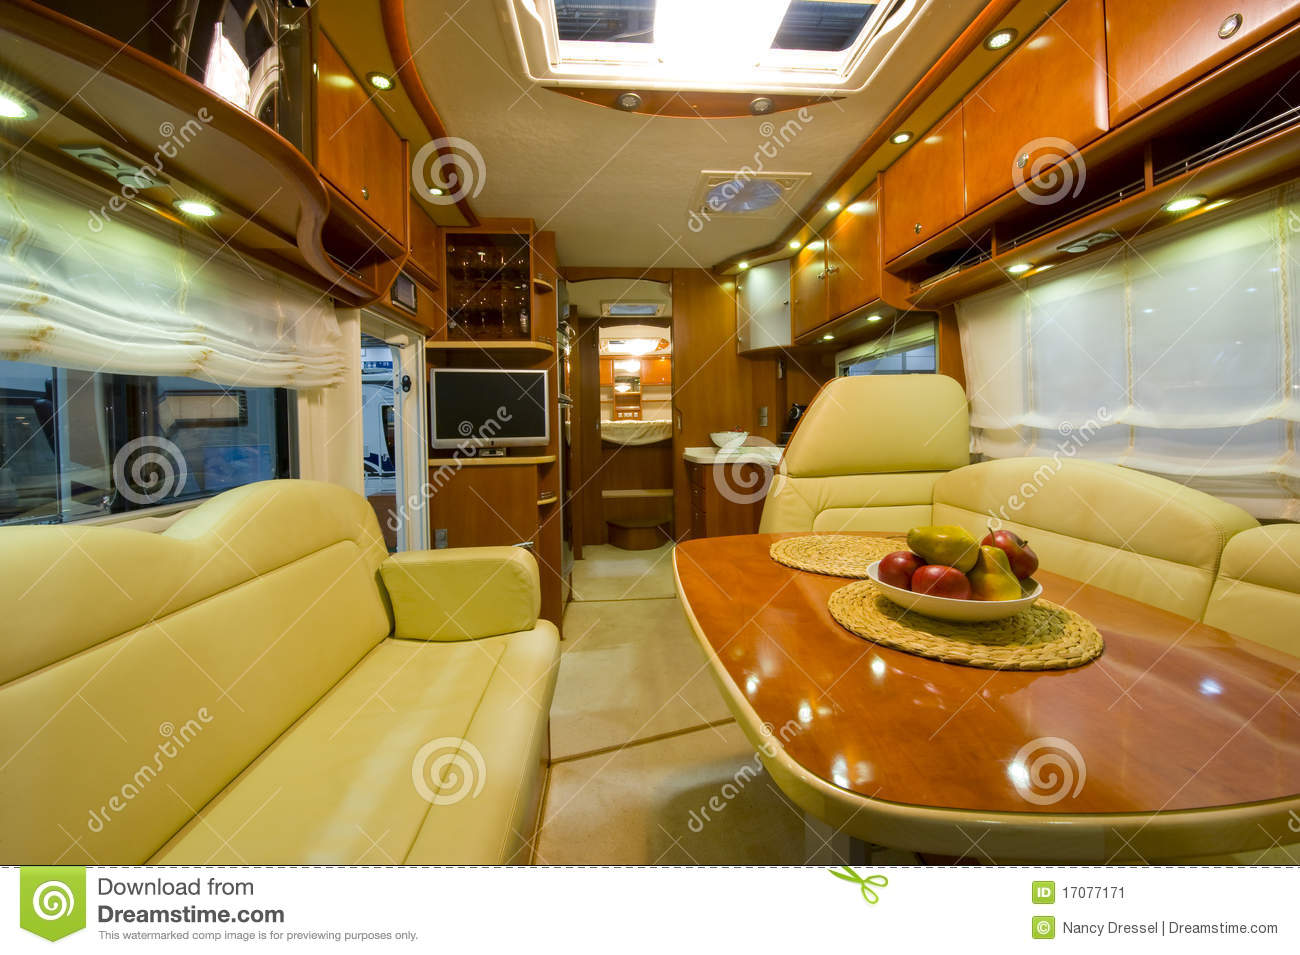 Camping car neuf int rieur image stock image du for Interieur camping car